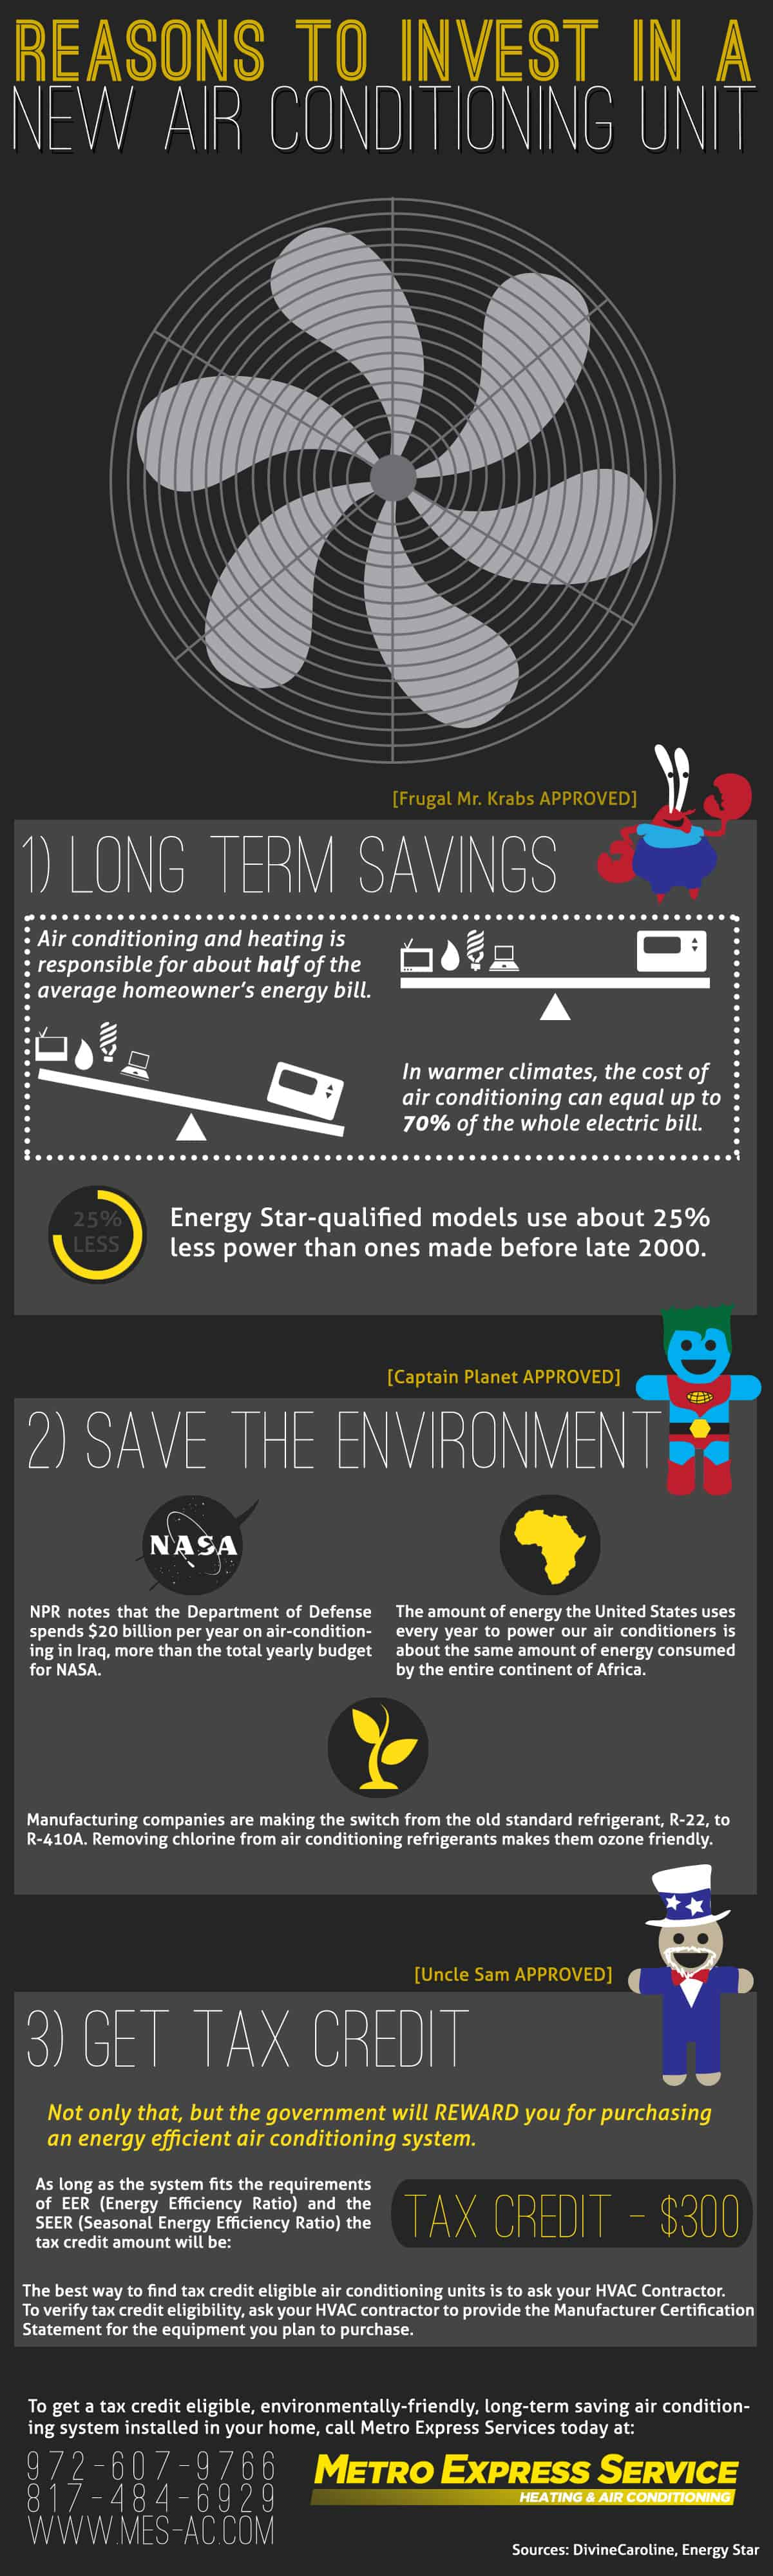 Reasons-to-invest-in-a-new-air-conditioner-unit-infographic